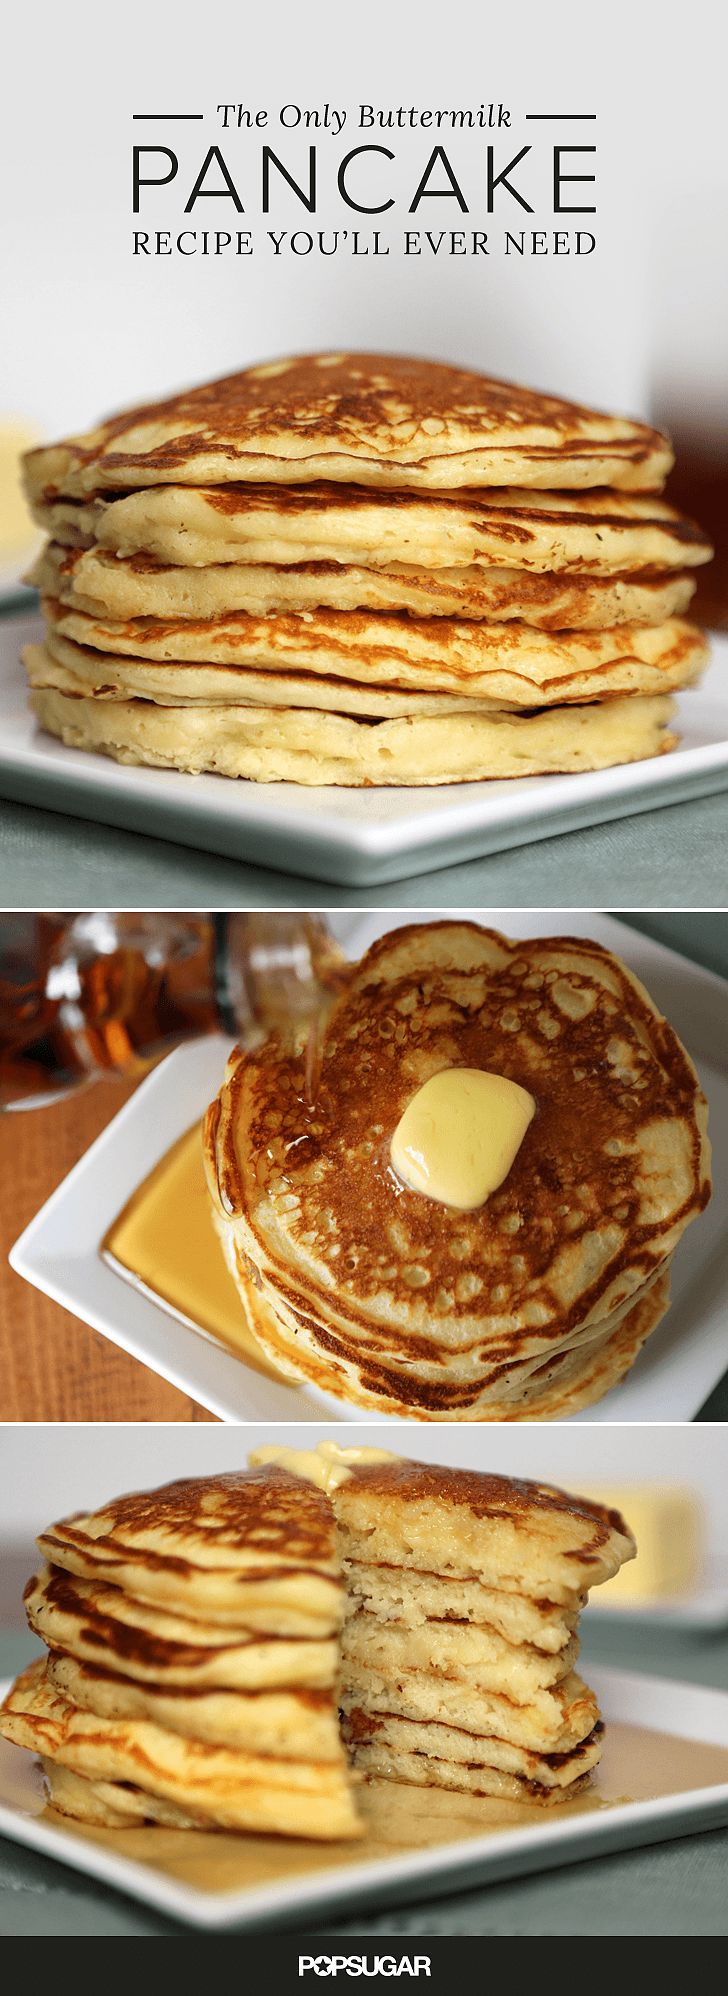 While many resort to pancake mix when making a special weekend breakfast, homemade pancakes are a must. Here's the little-known secret: the batter takes just as long to make as a boxed mix, and the result is infinitely better. Try the recipe and find out for yourself.